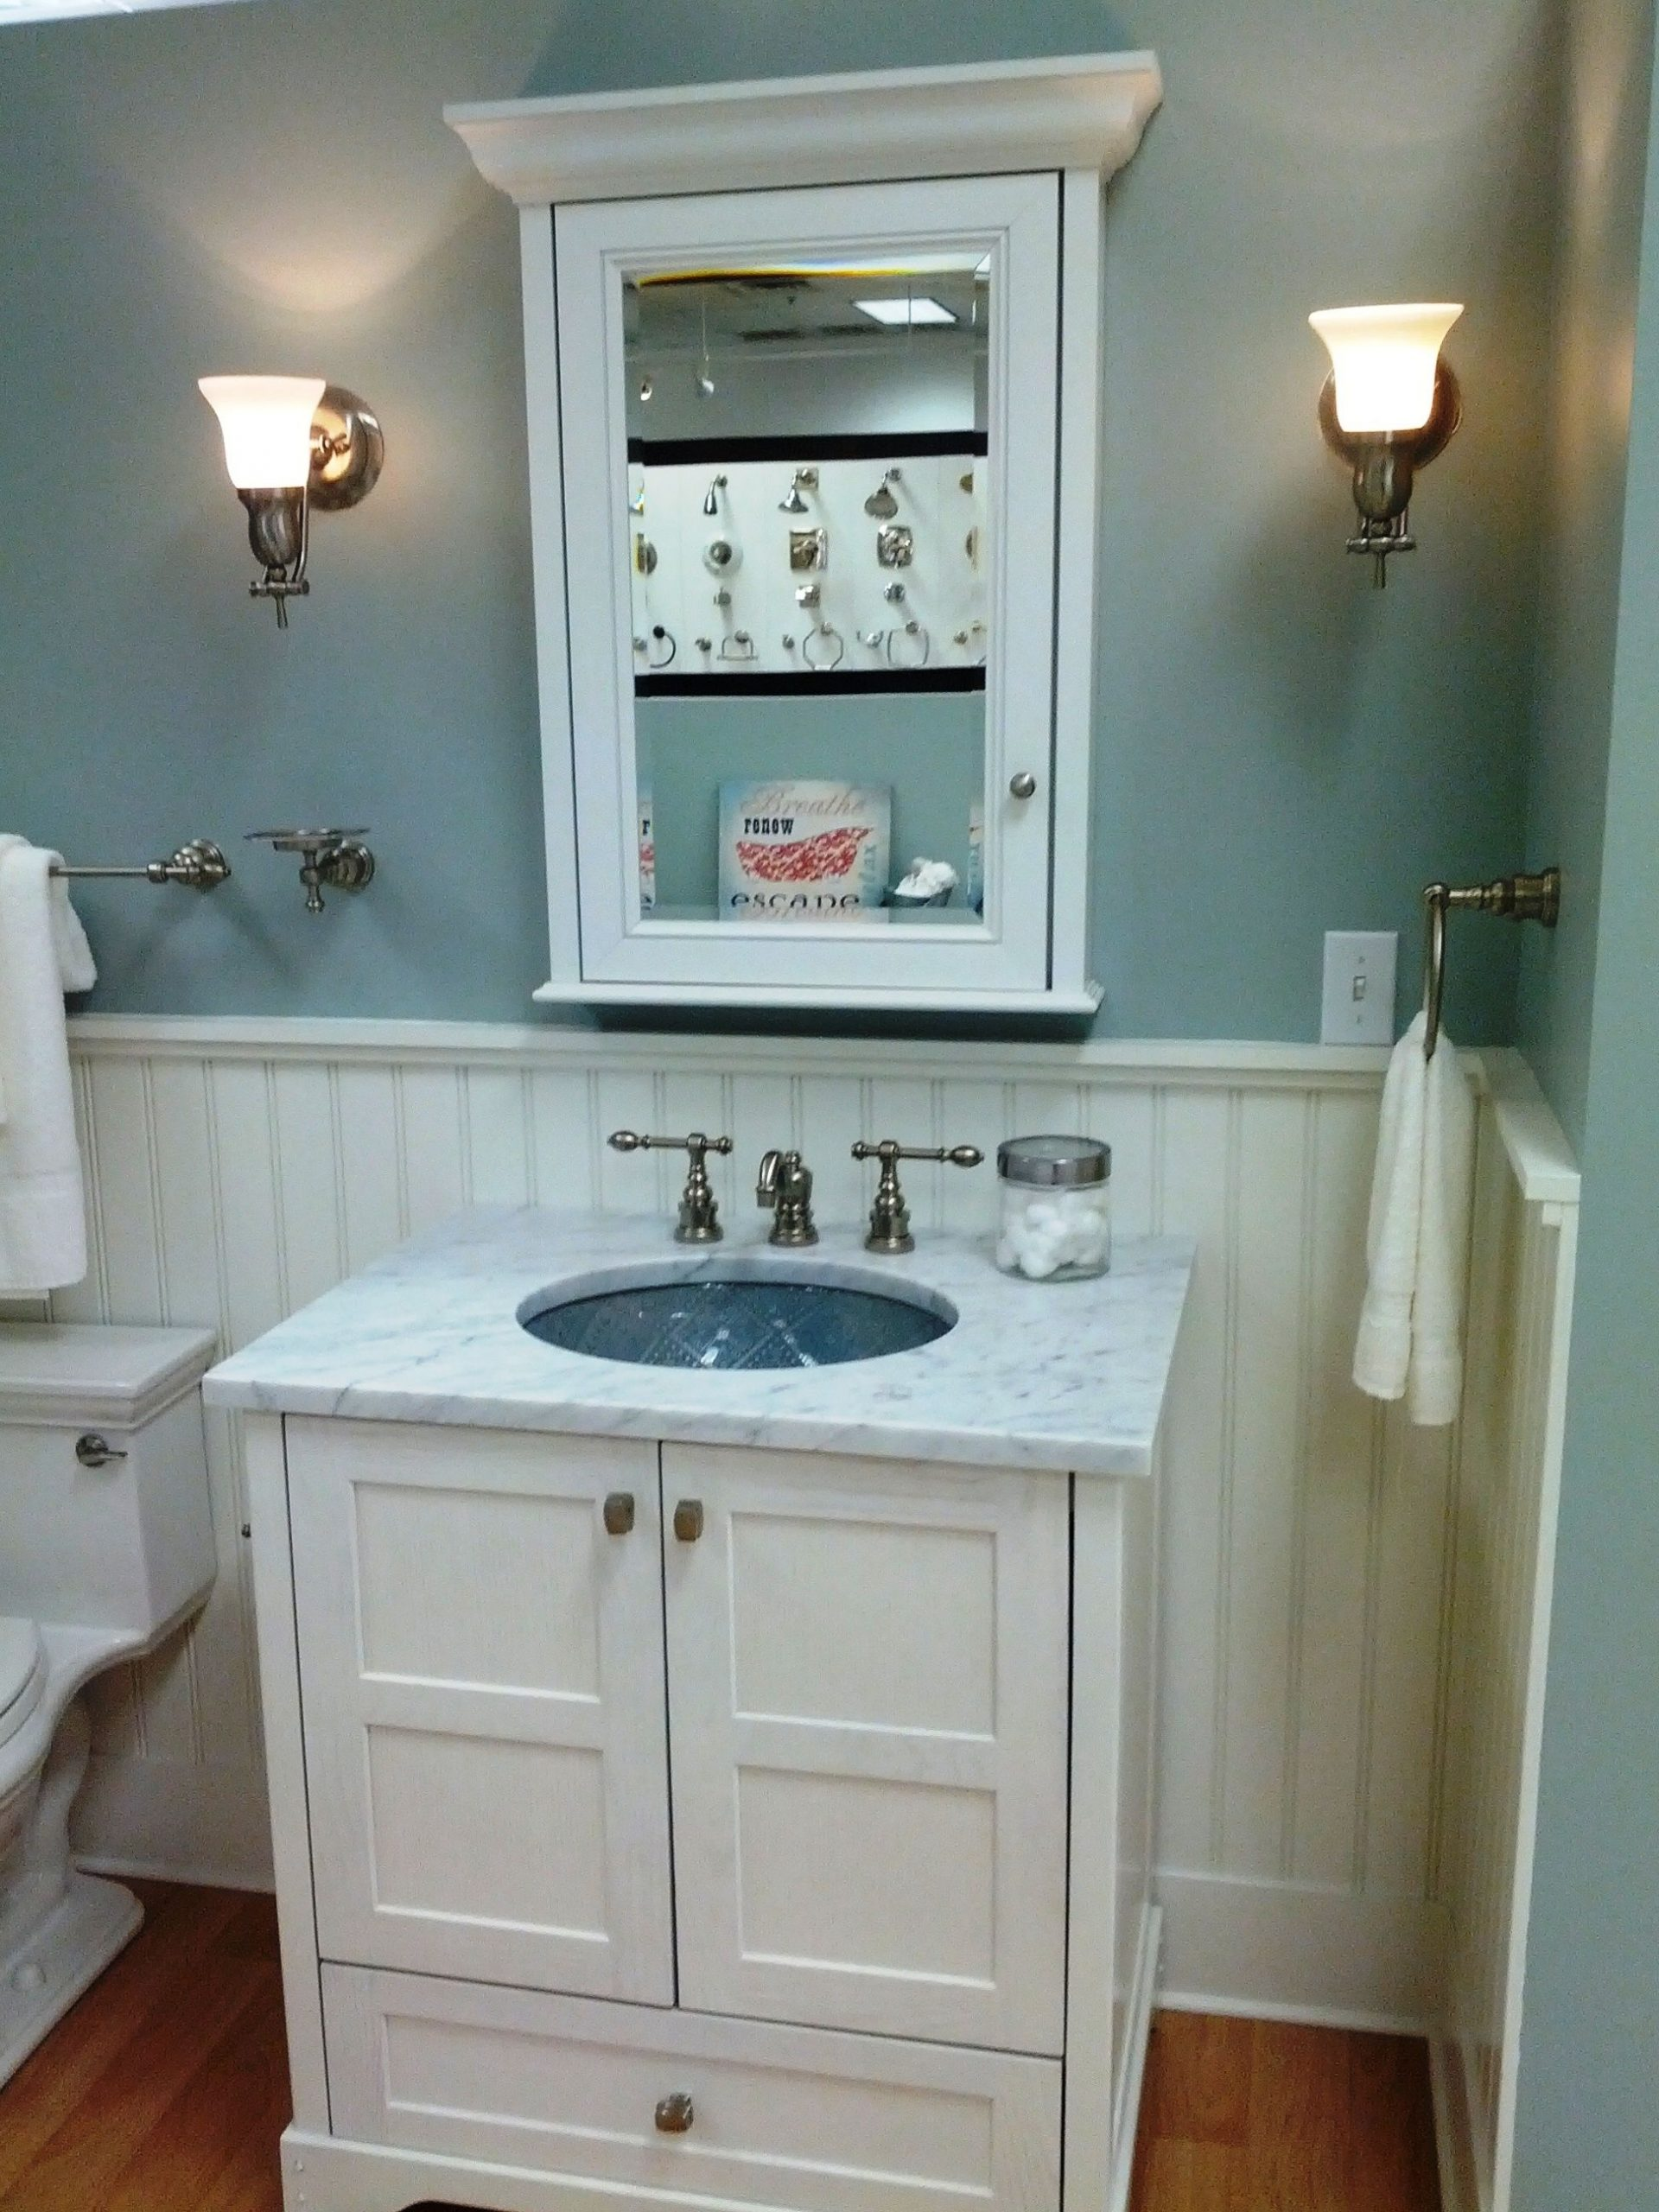 Bathroom Eye Candy | Daley Decor With Debbe Daley | Bathroom Small Bathroom Designs With Wainscoting